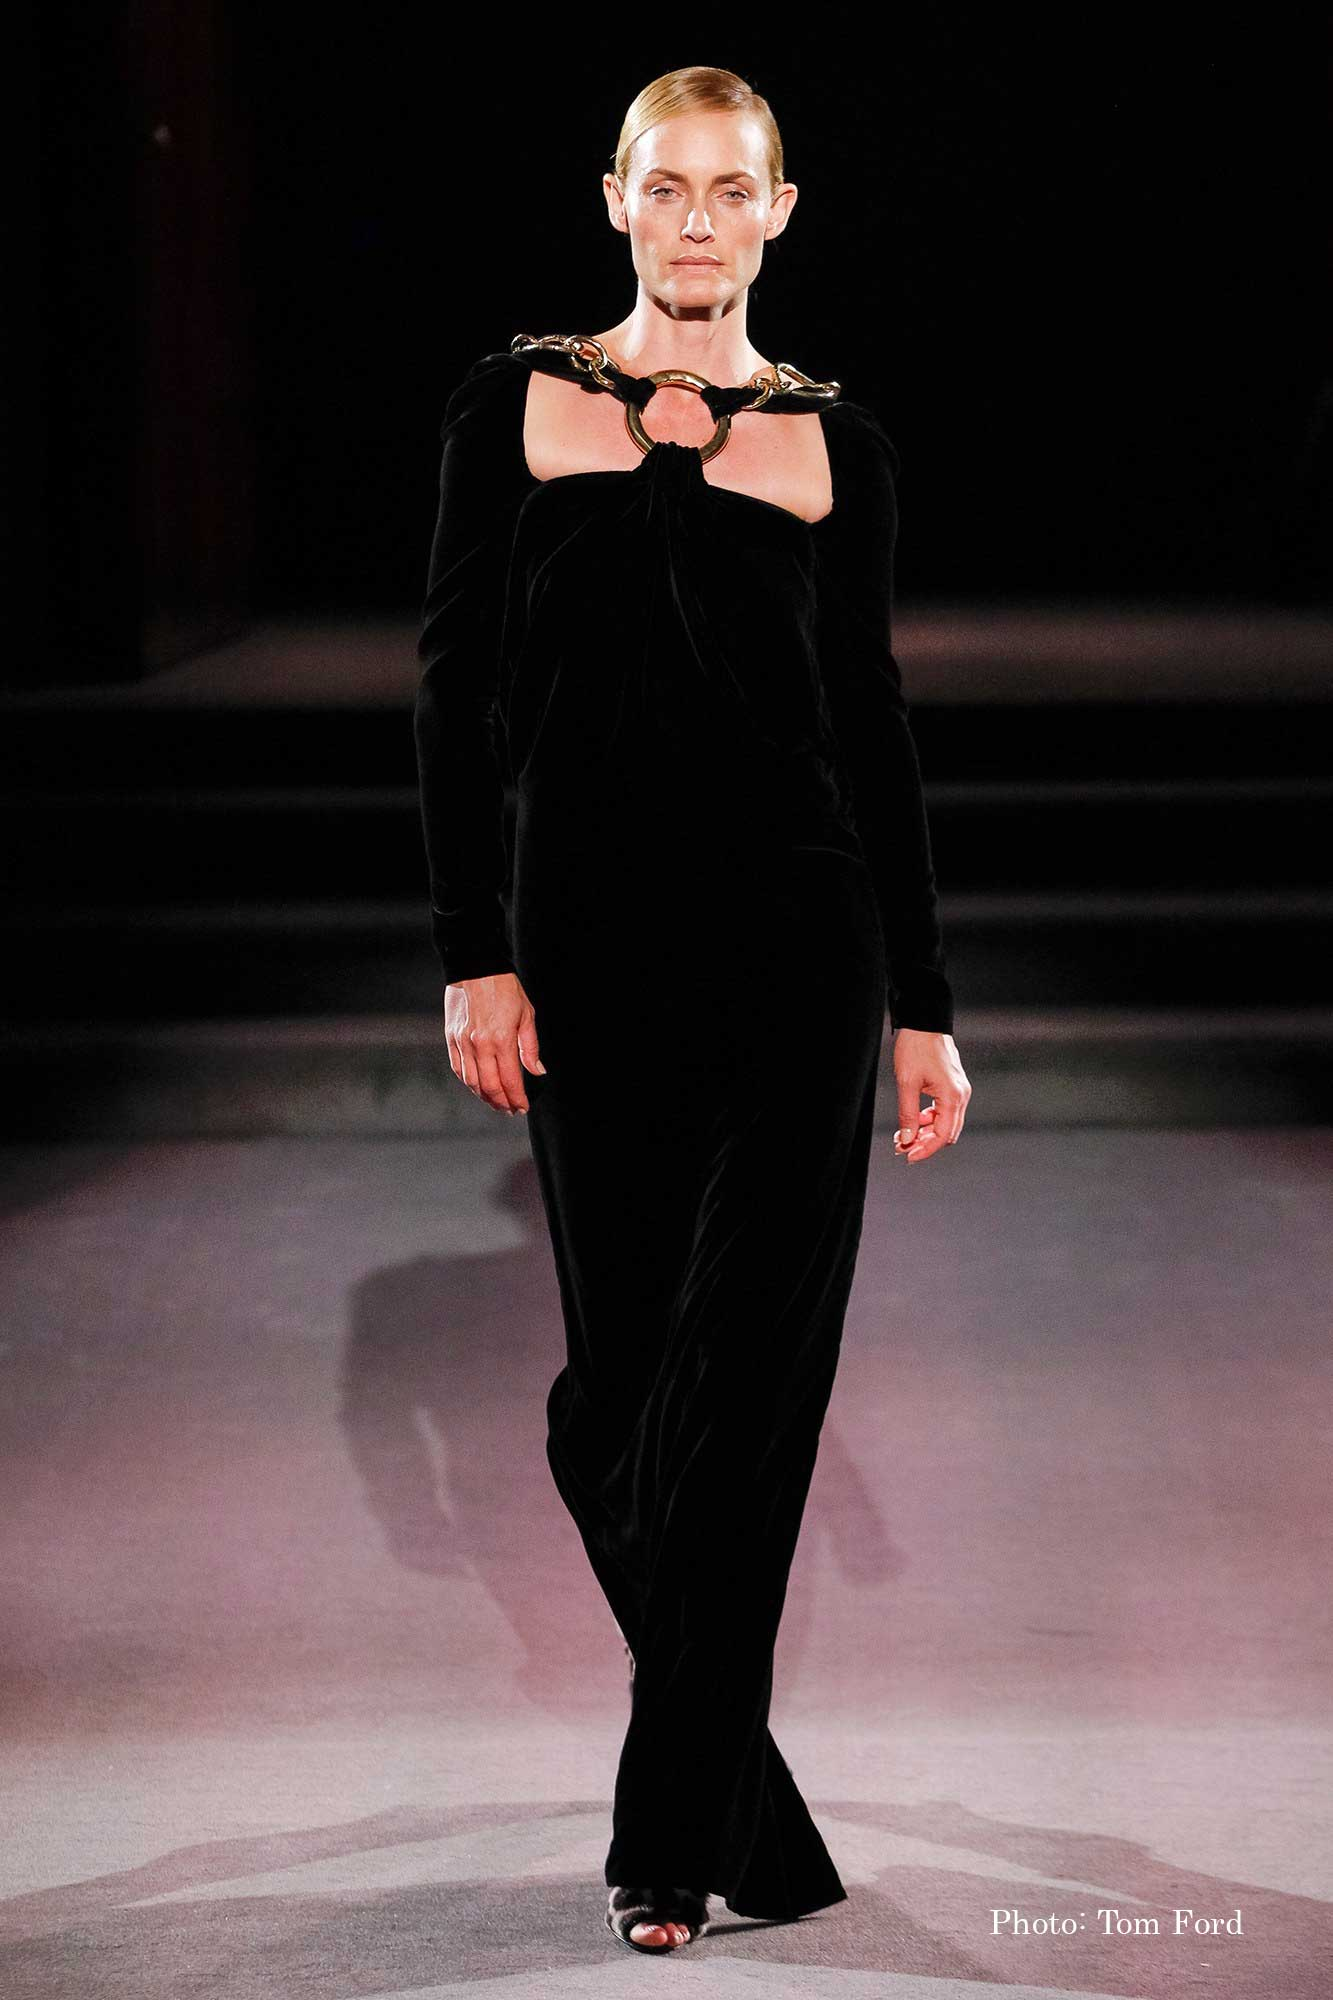 Tom Ford, 2016 Ready-to-Wear, Look 48. Vogue.com